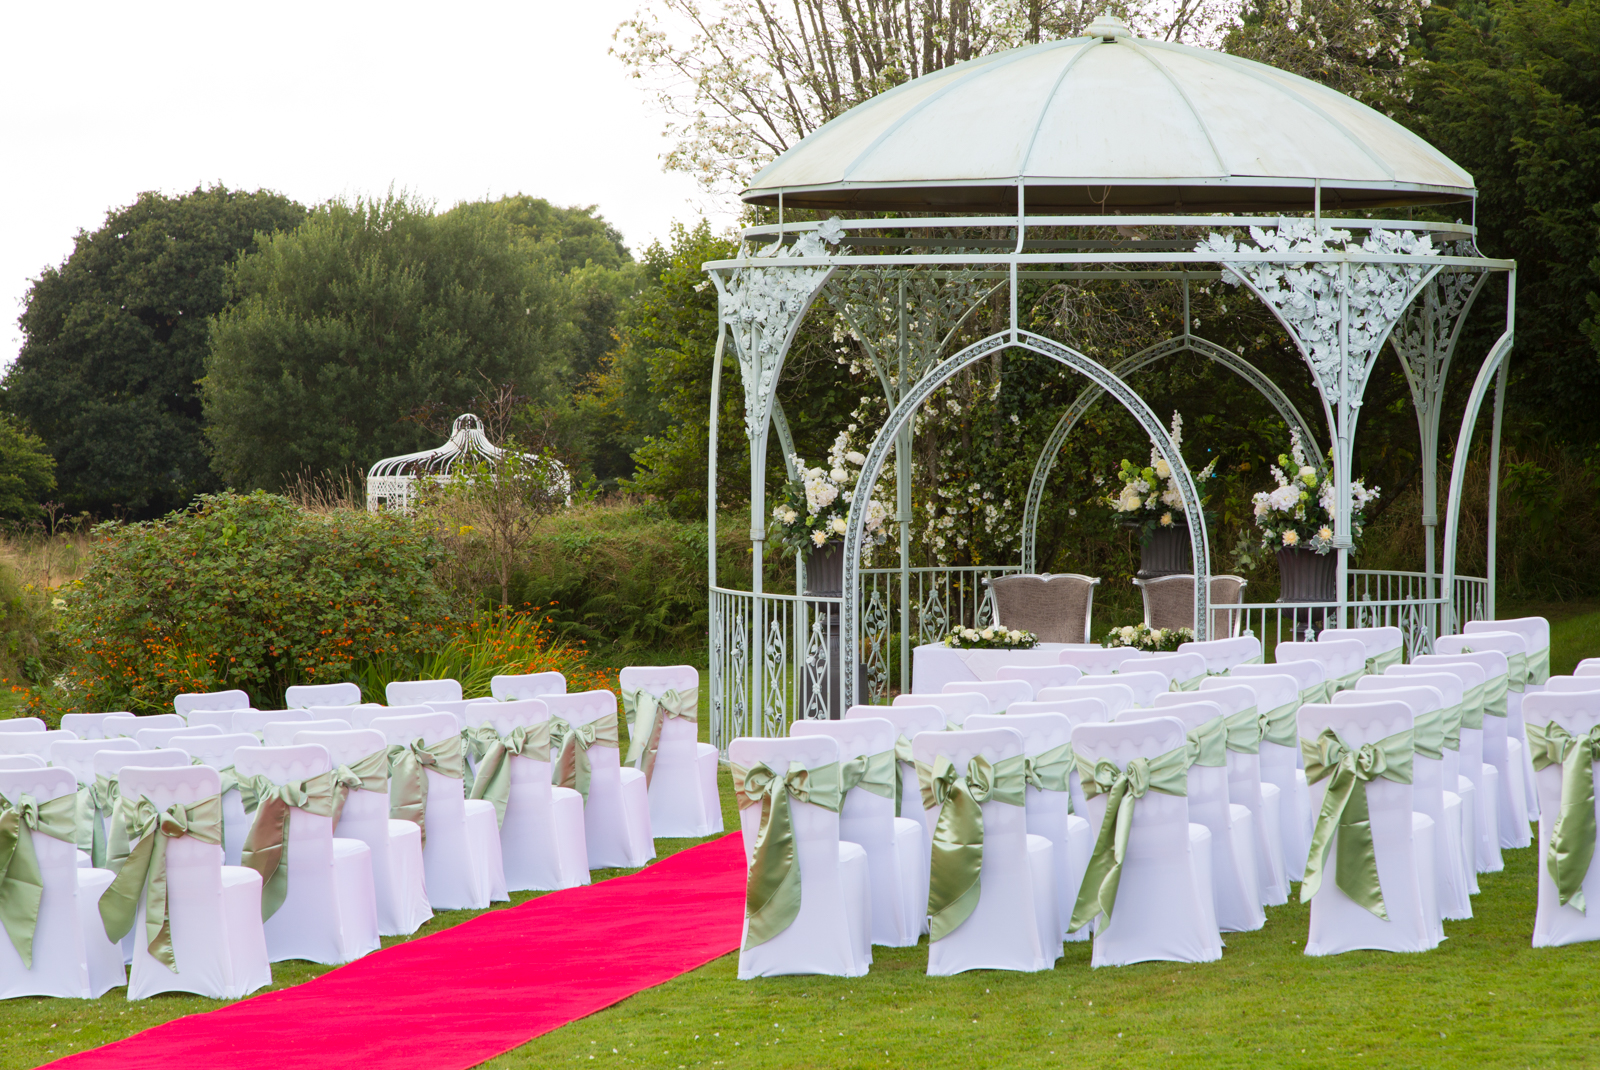 Best Wedding Venues in Devon - Moorland Garden Hotel